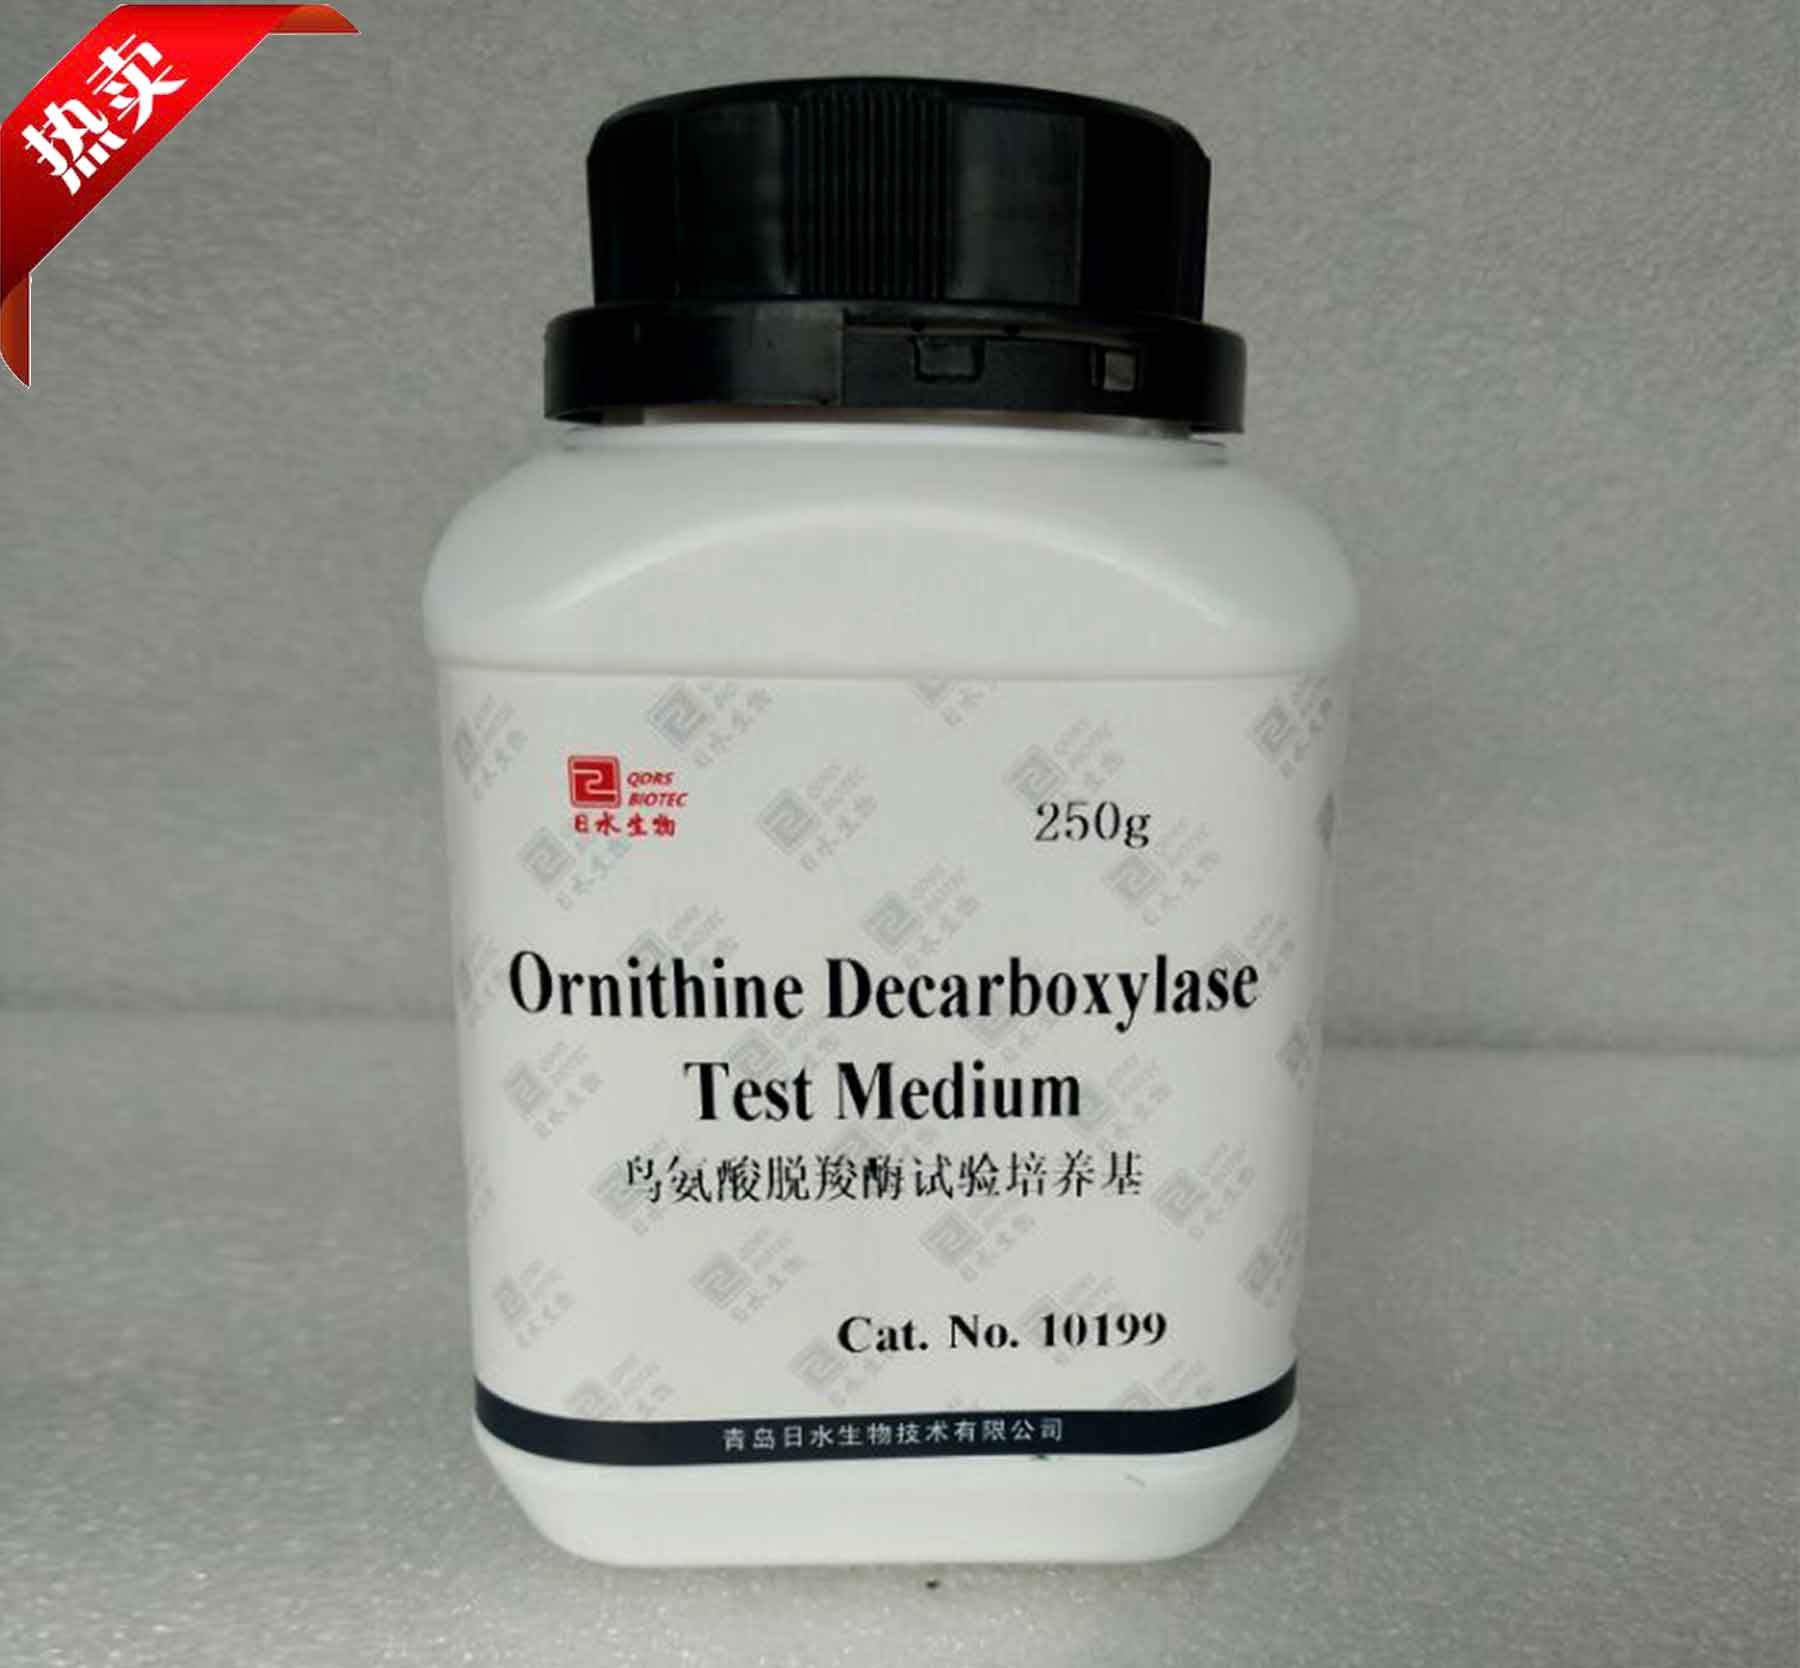 鸟氨酸脱羧酶试验培养基(Ornithine Decarboxylase Test Medium)